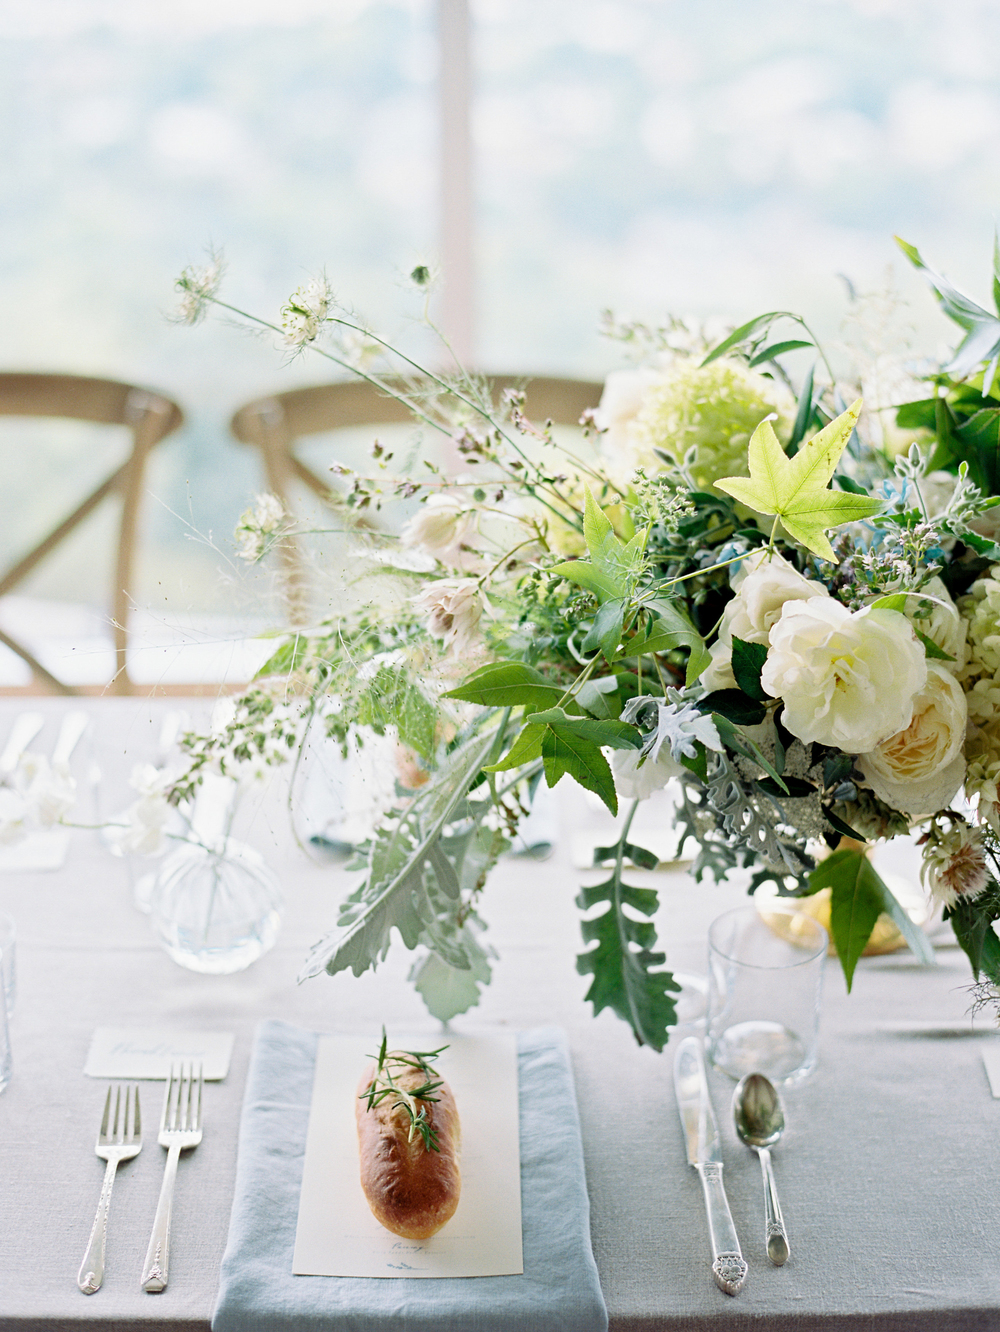 handley breaux designs | holly carlisle | floral tastemaker | antiques at the gardens